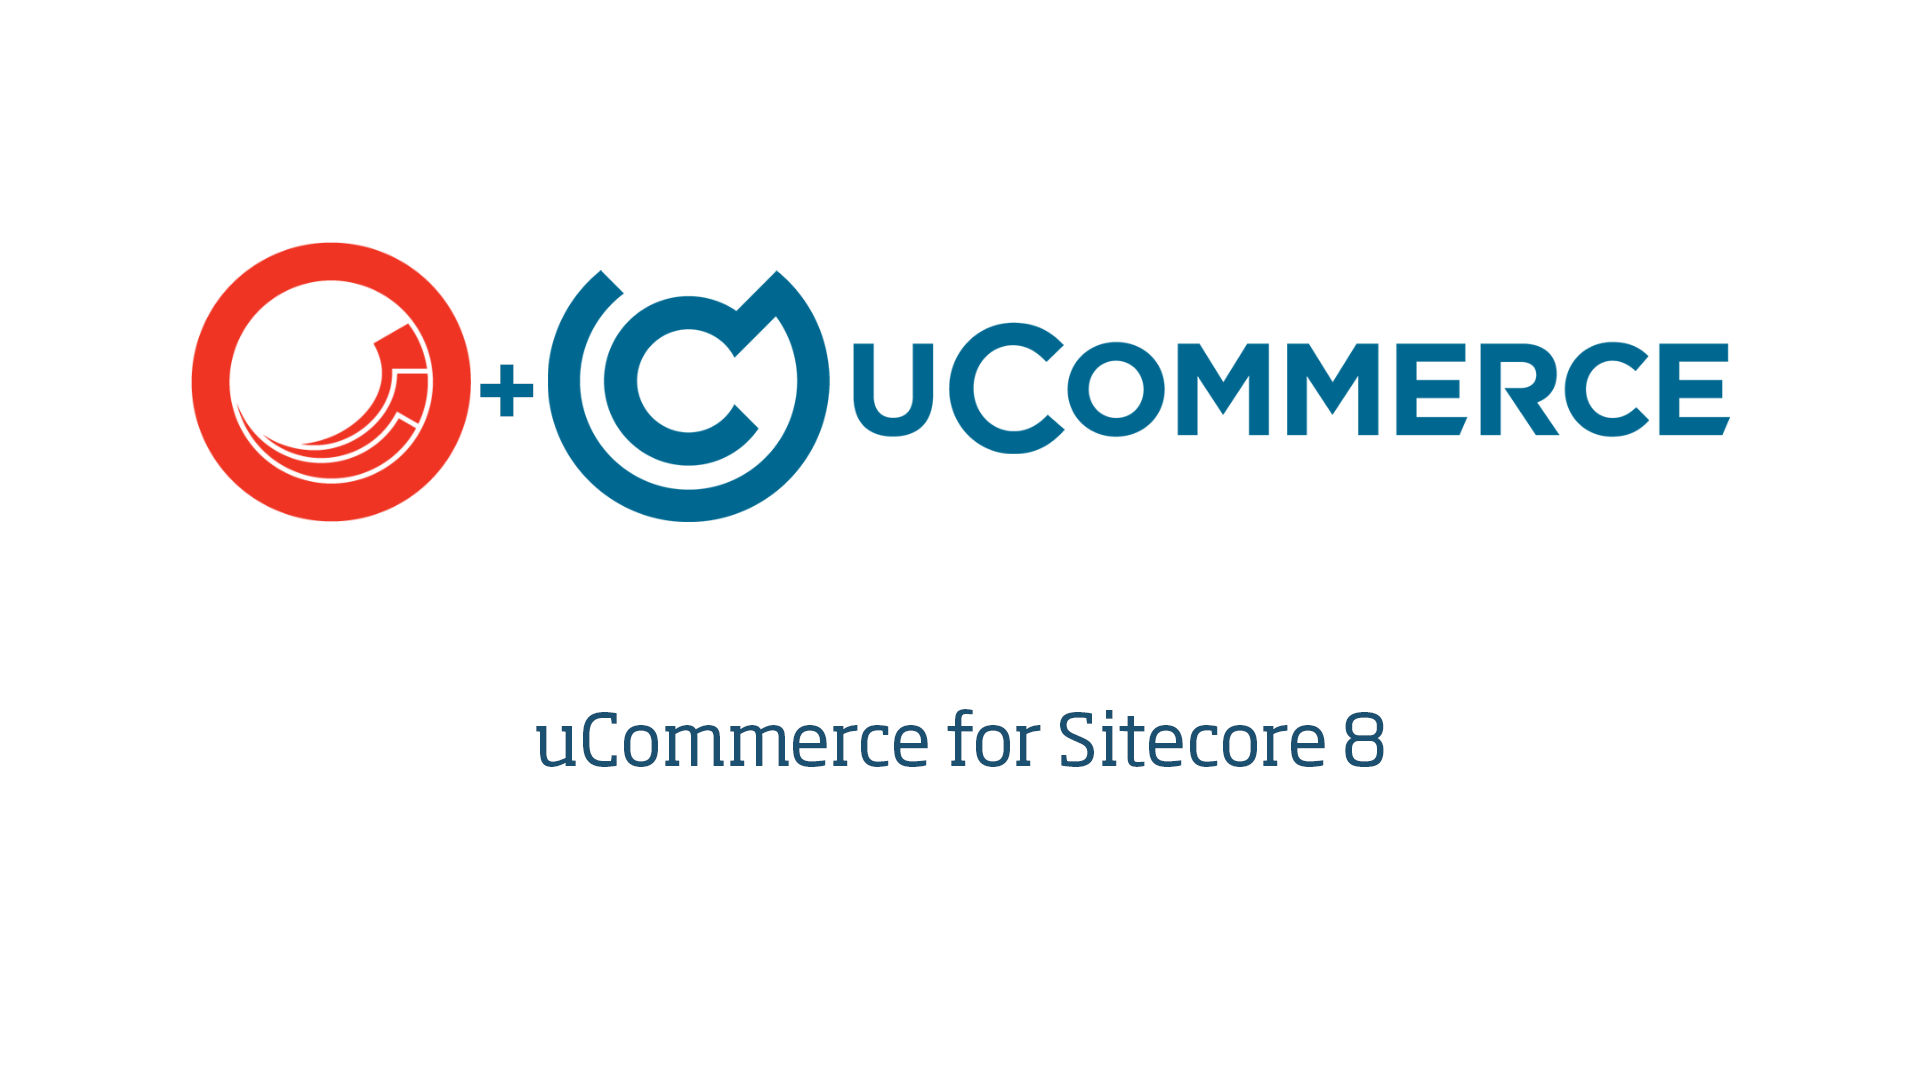 UCommerce Platform With Sitecore